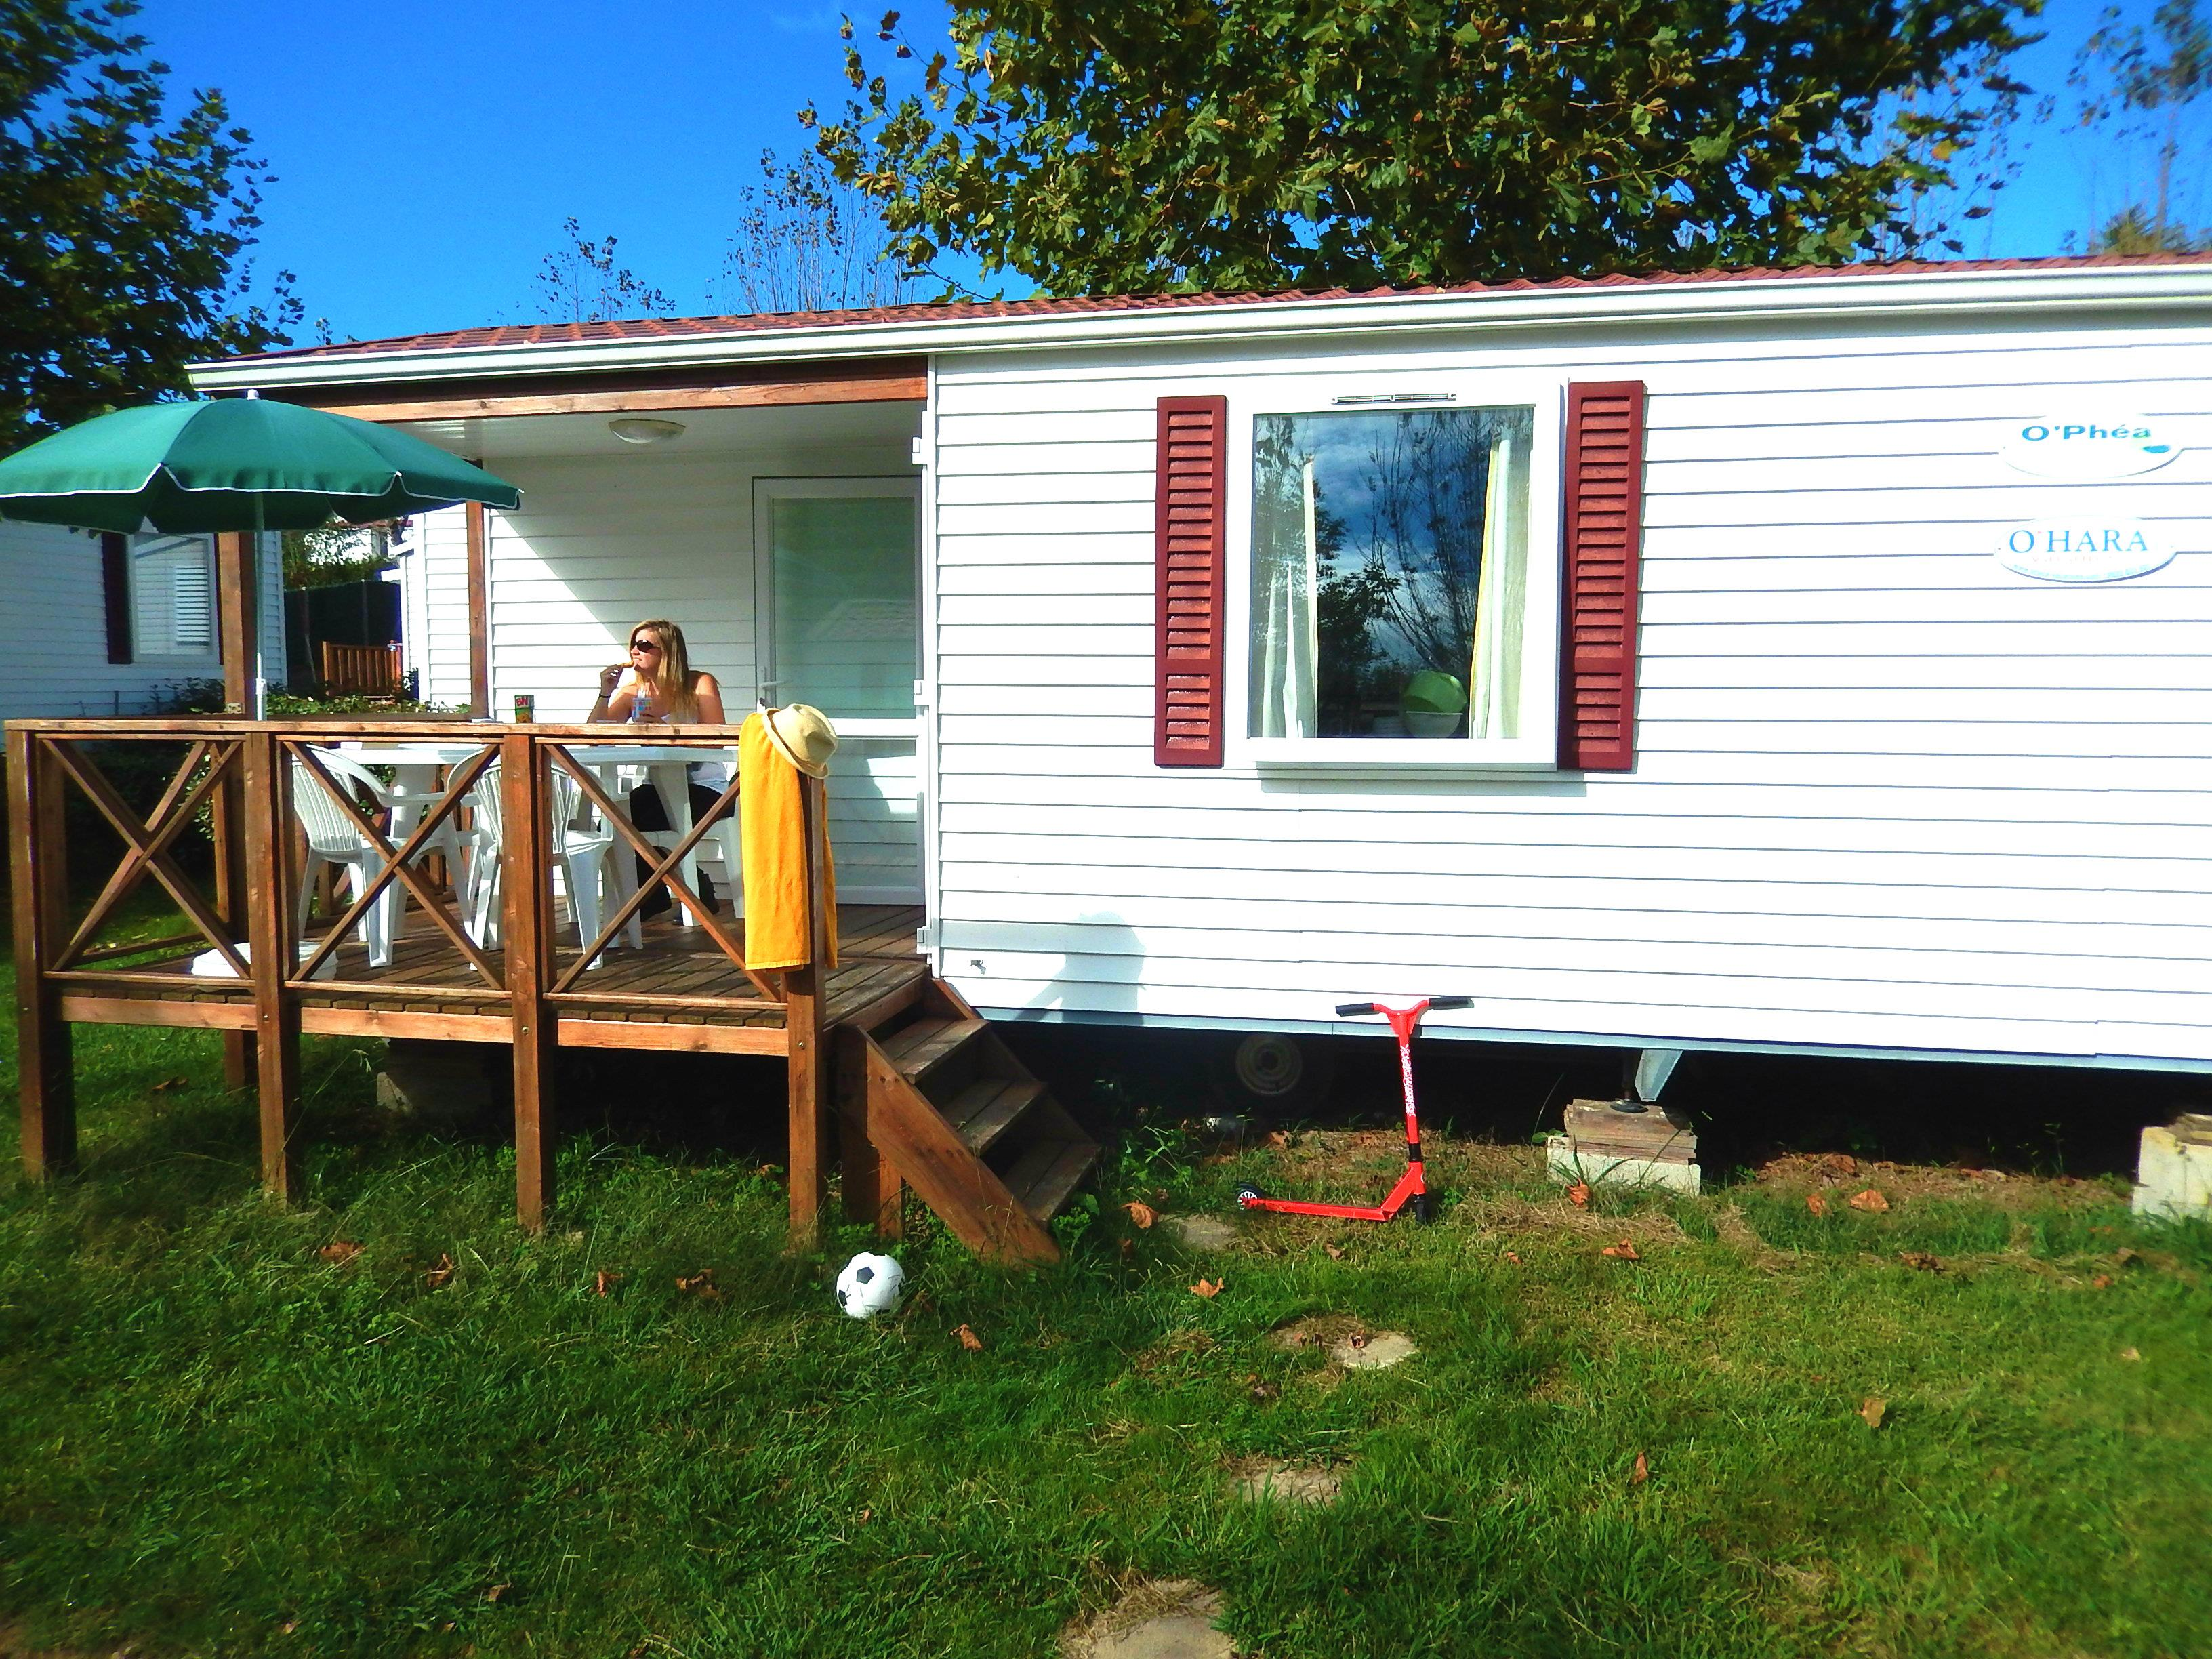 Mobil-Home 25m² 2 chambres + terrasse 7m²